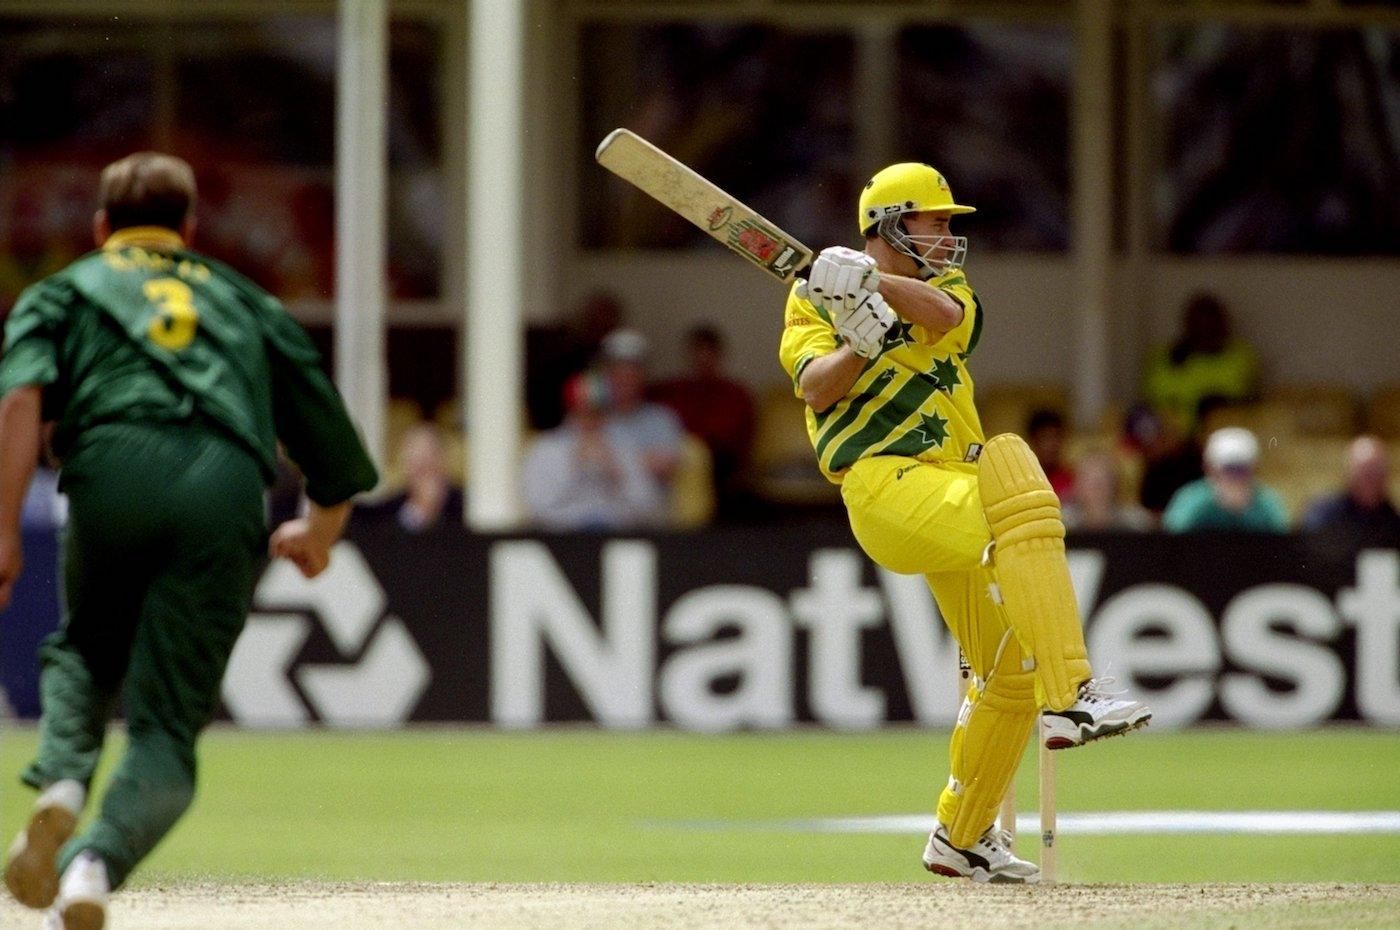 Bat out of hell: Michael Bevan wields the Puma Milichamp to rescue Australia from 68 for 4 in <i>that</i> fateful World Cup semi-final in 1999